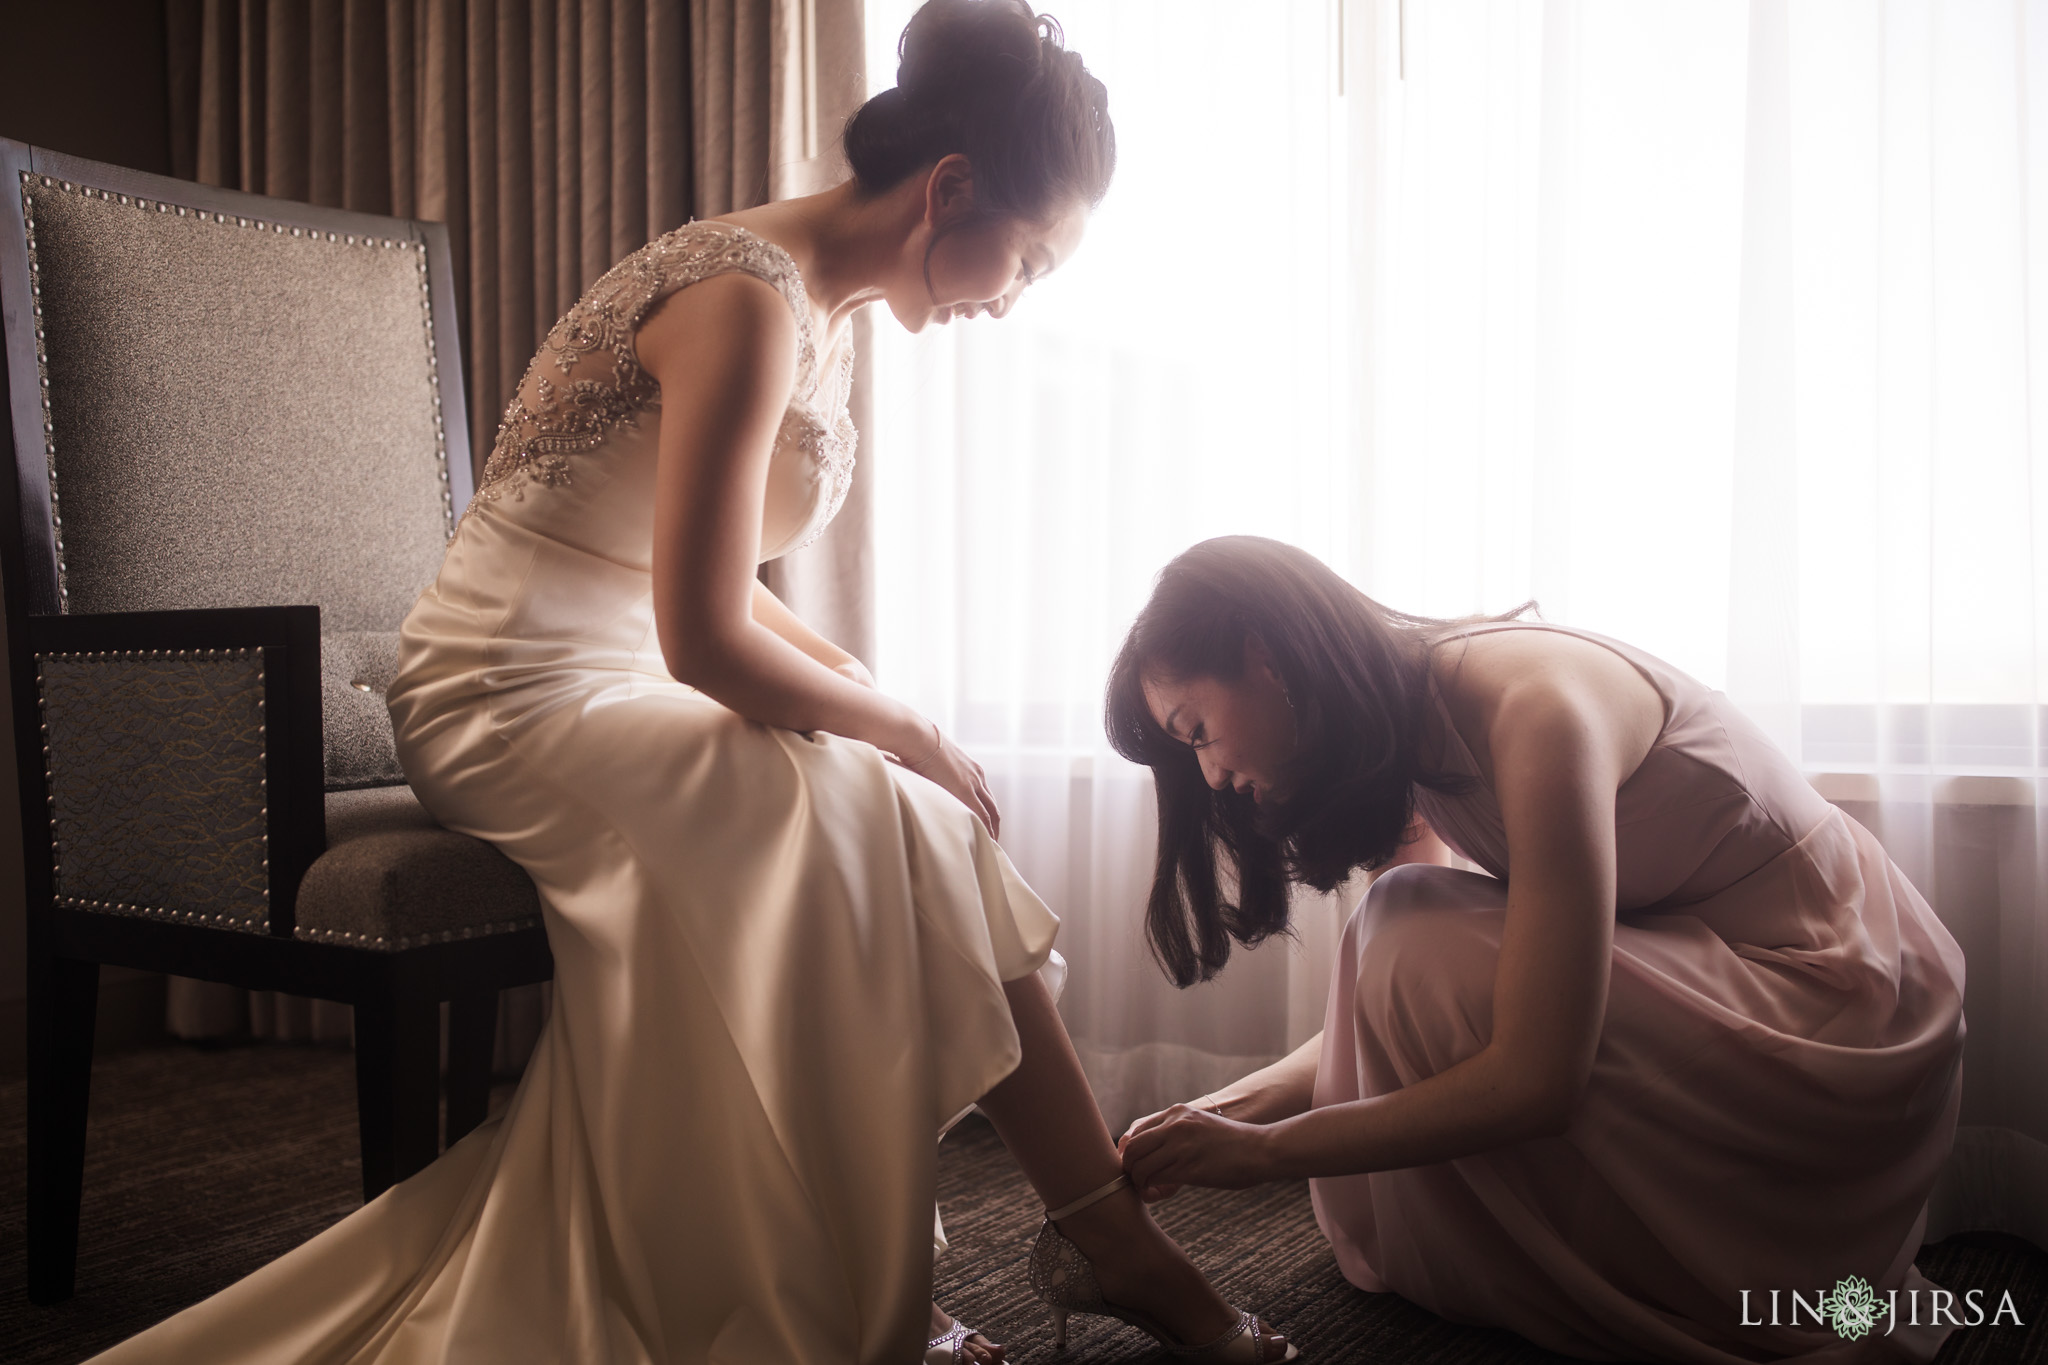 05 segerstrom center for the arts costa mesa wedding photography